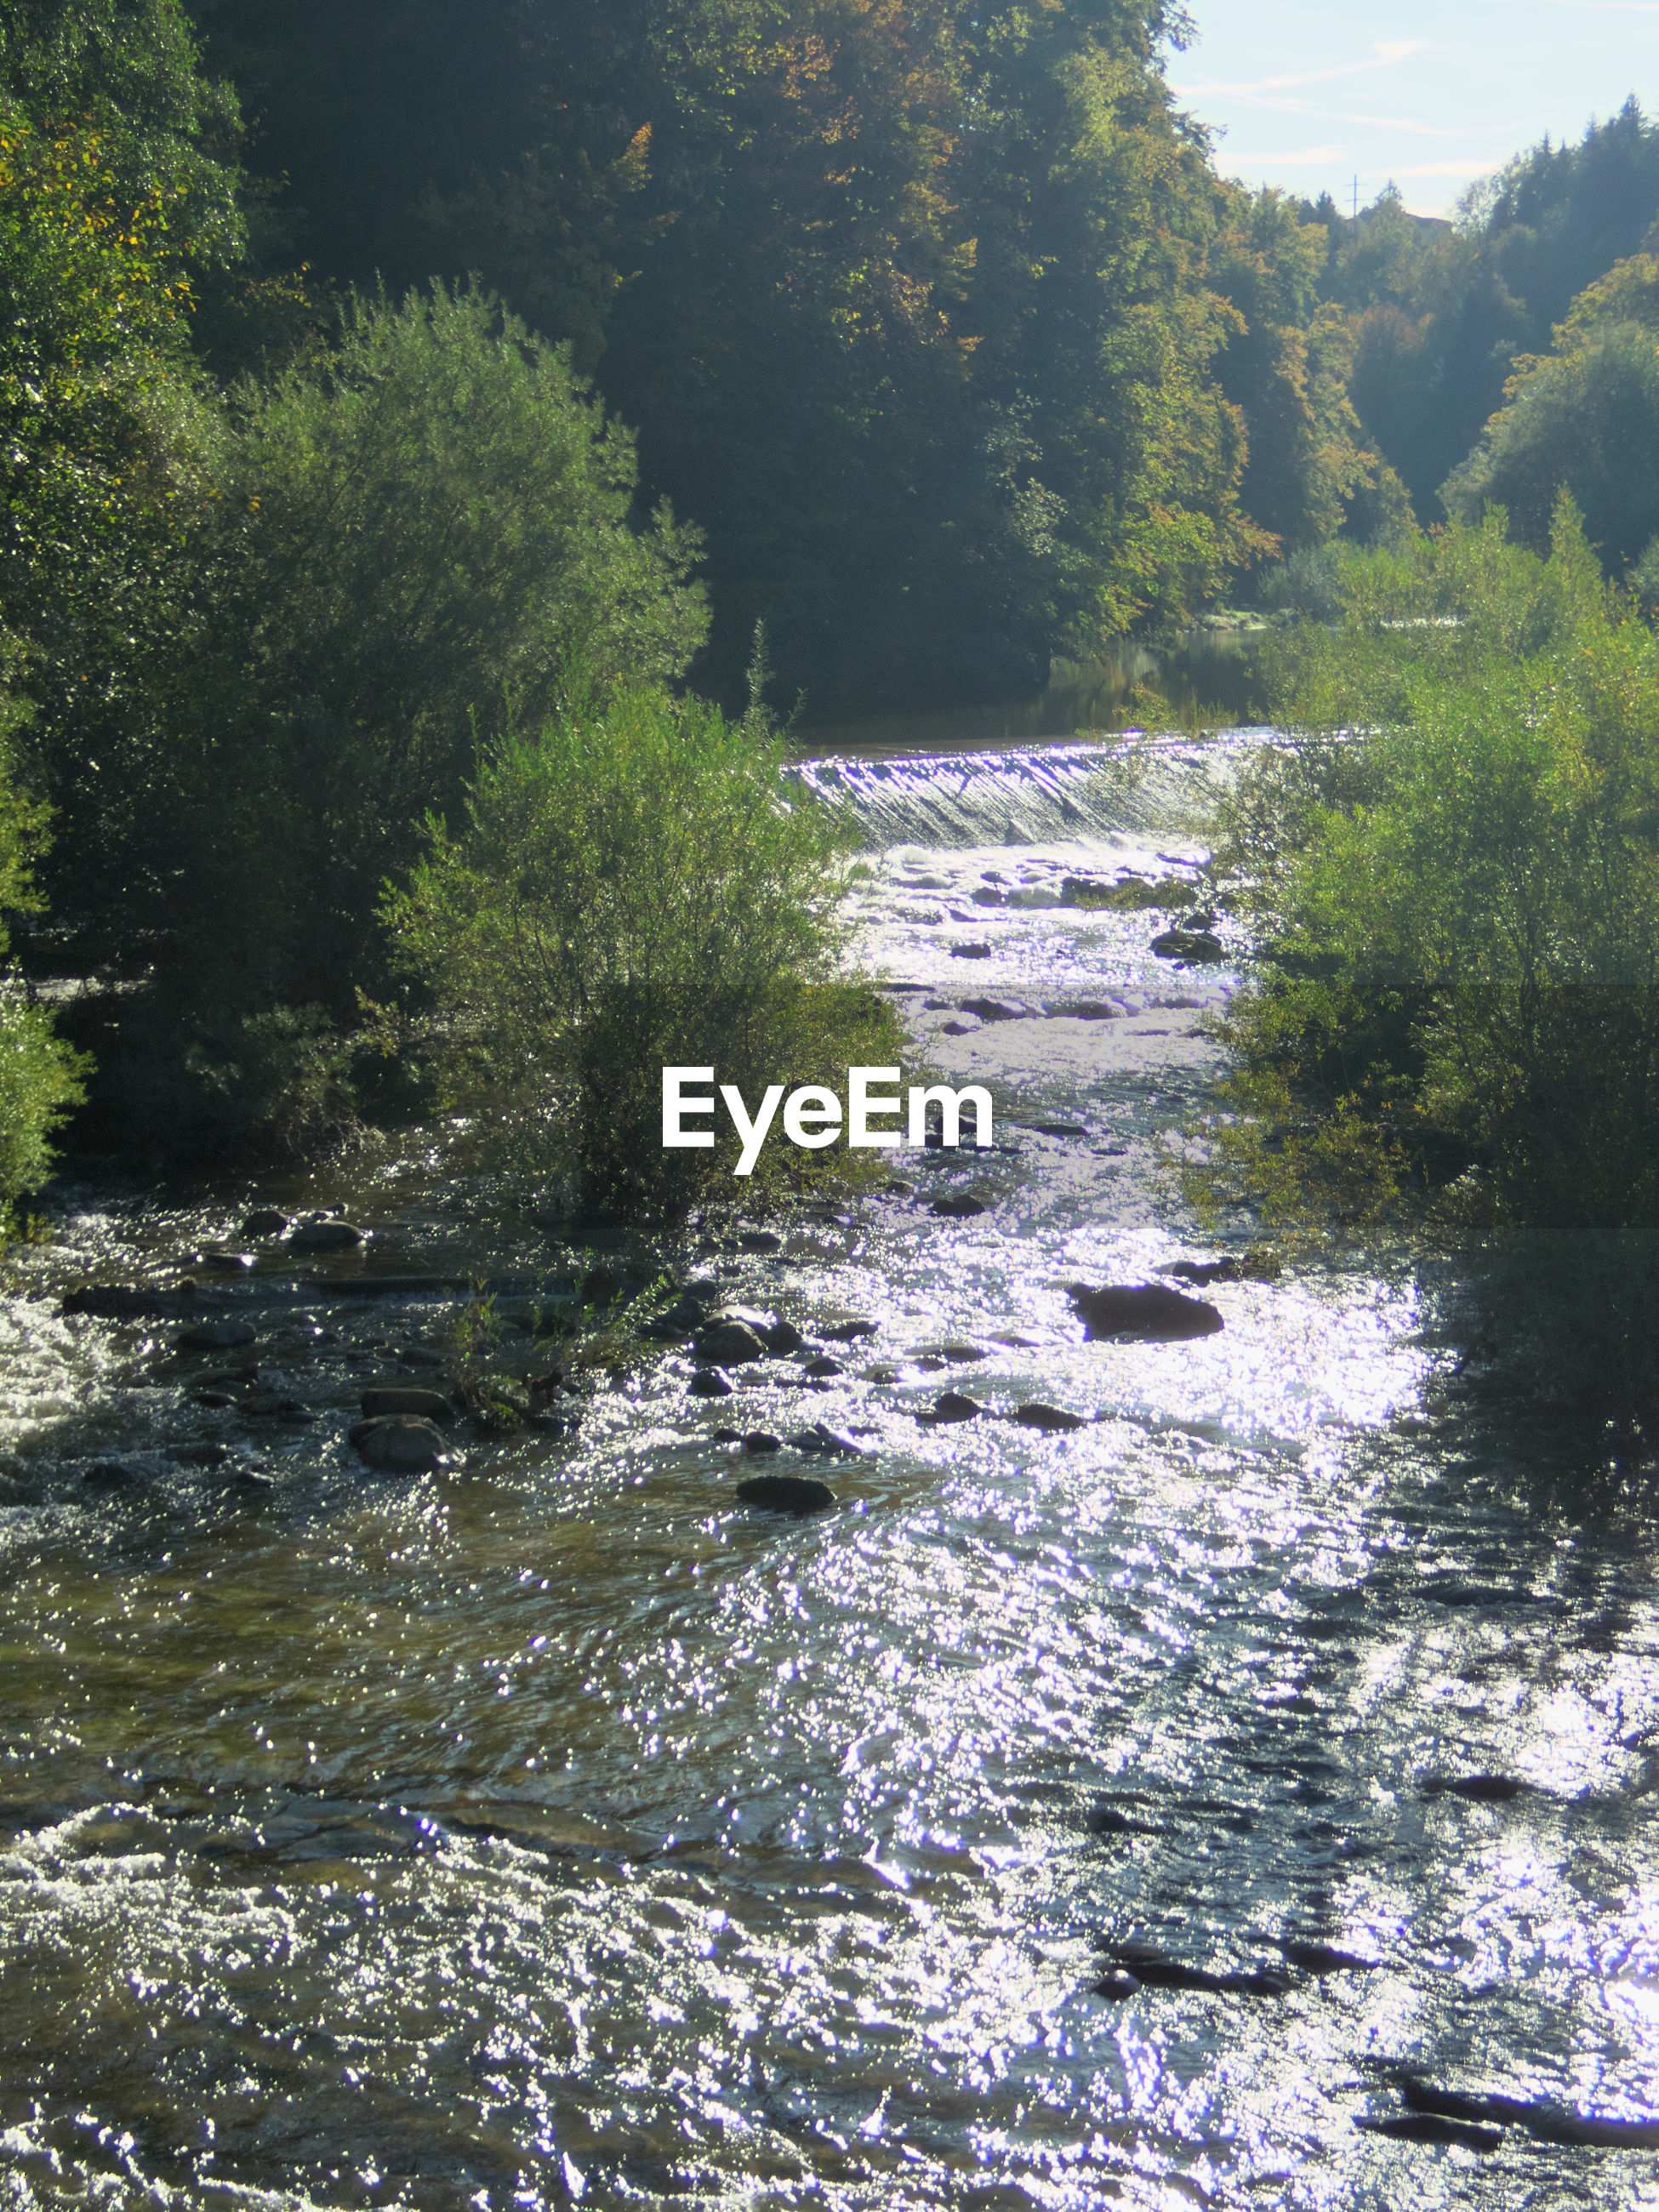 SCENIC VIEW OF RIVER AMIDST TREES IN FOREST